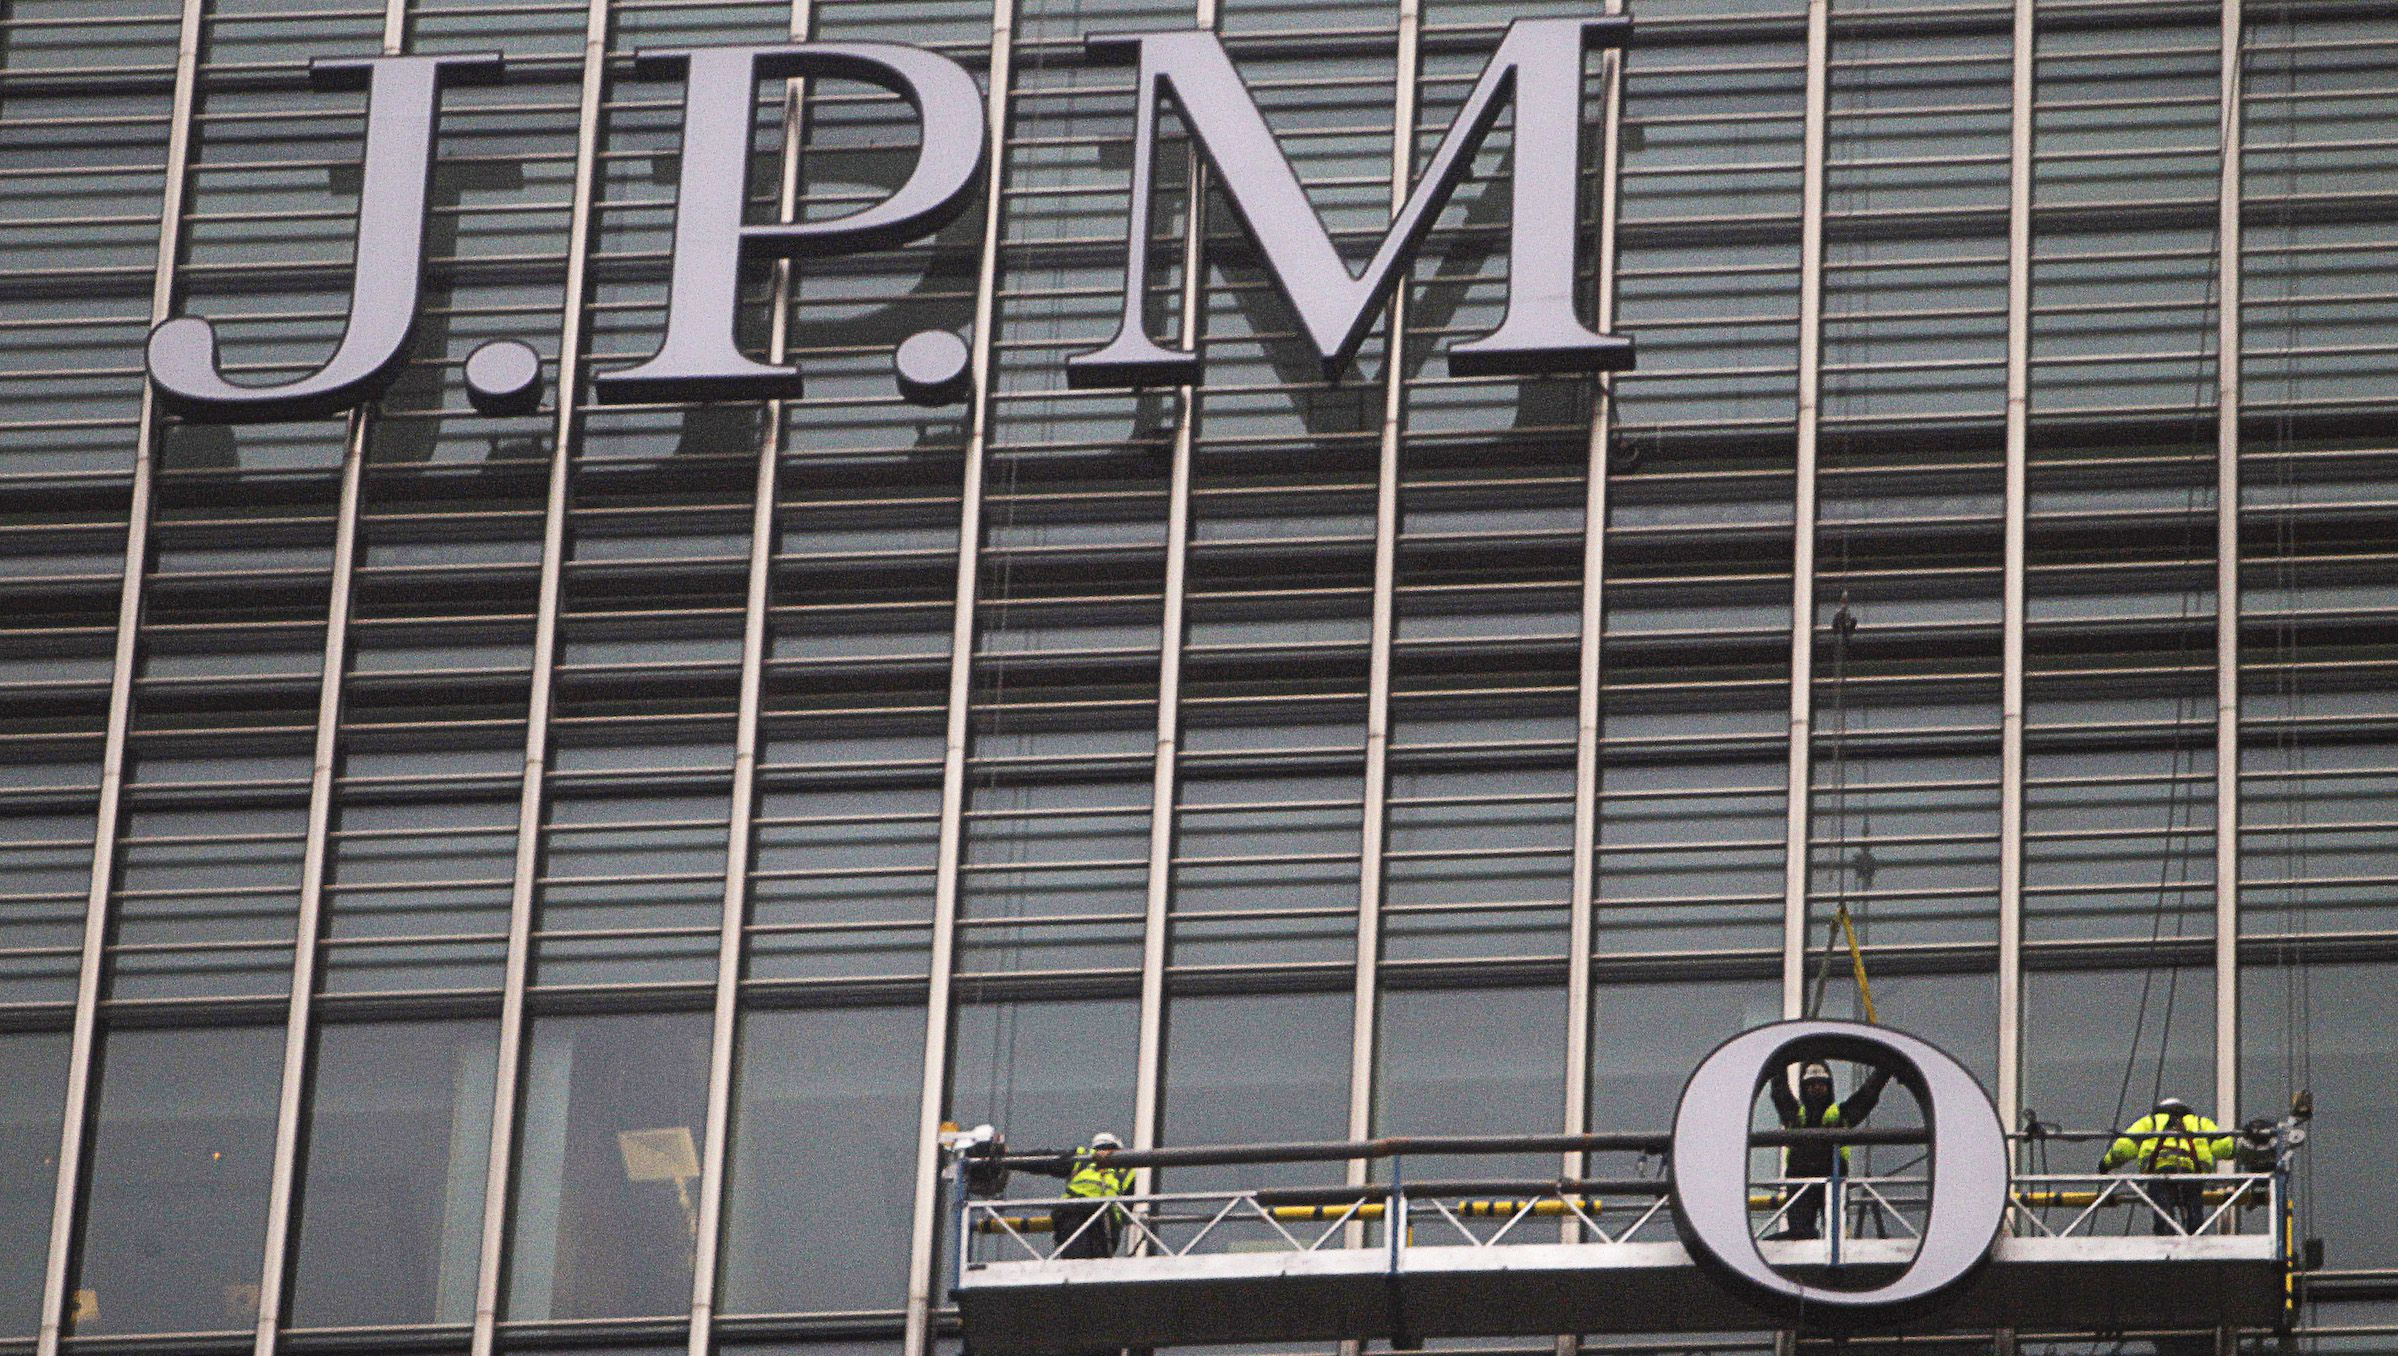 Workers erect a sign for JPMorgan investment bank at Canary Wharf in London